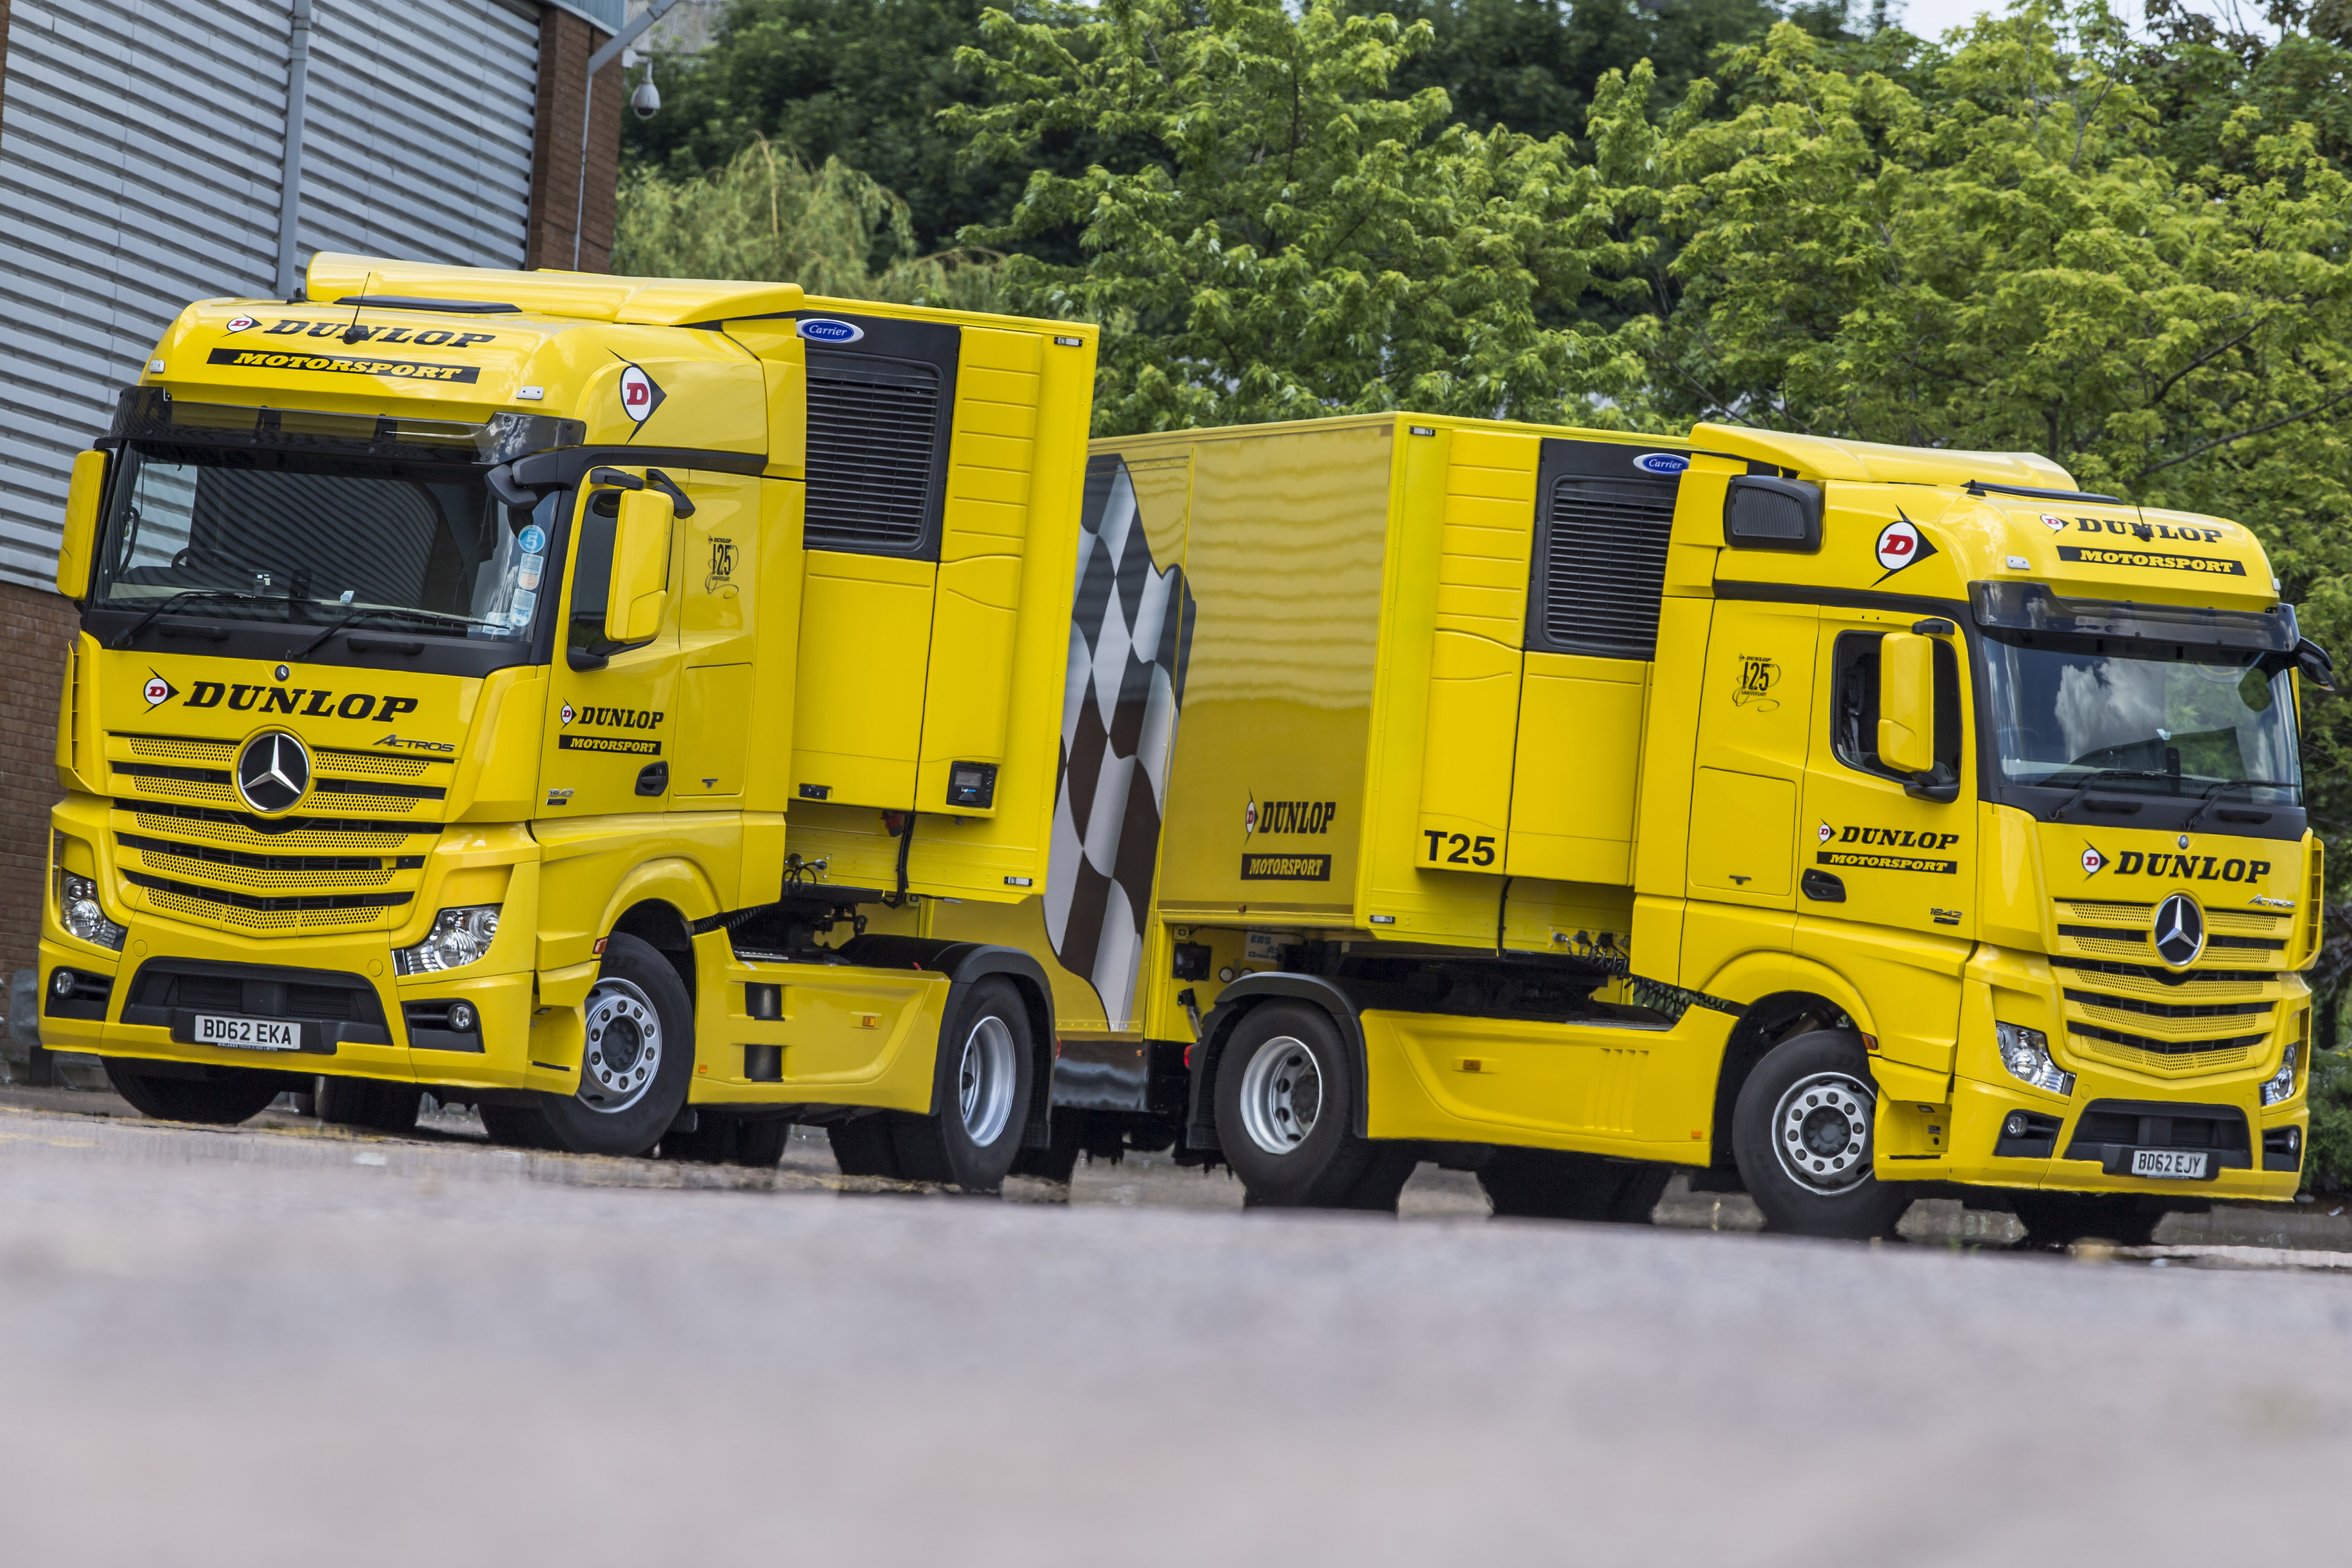 Dunlop Motorsport temperature-controlled trailers